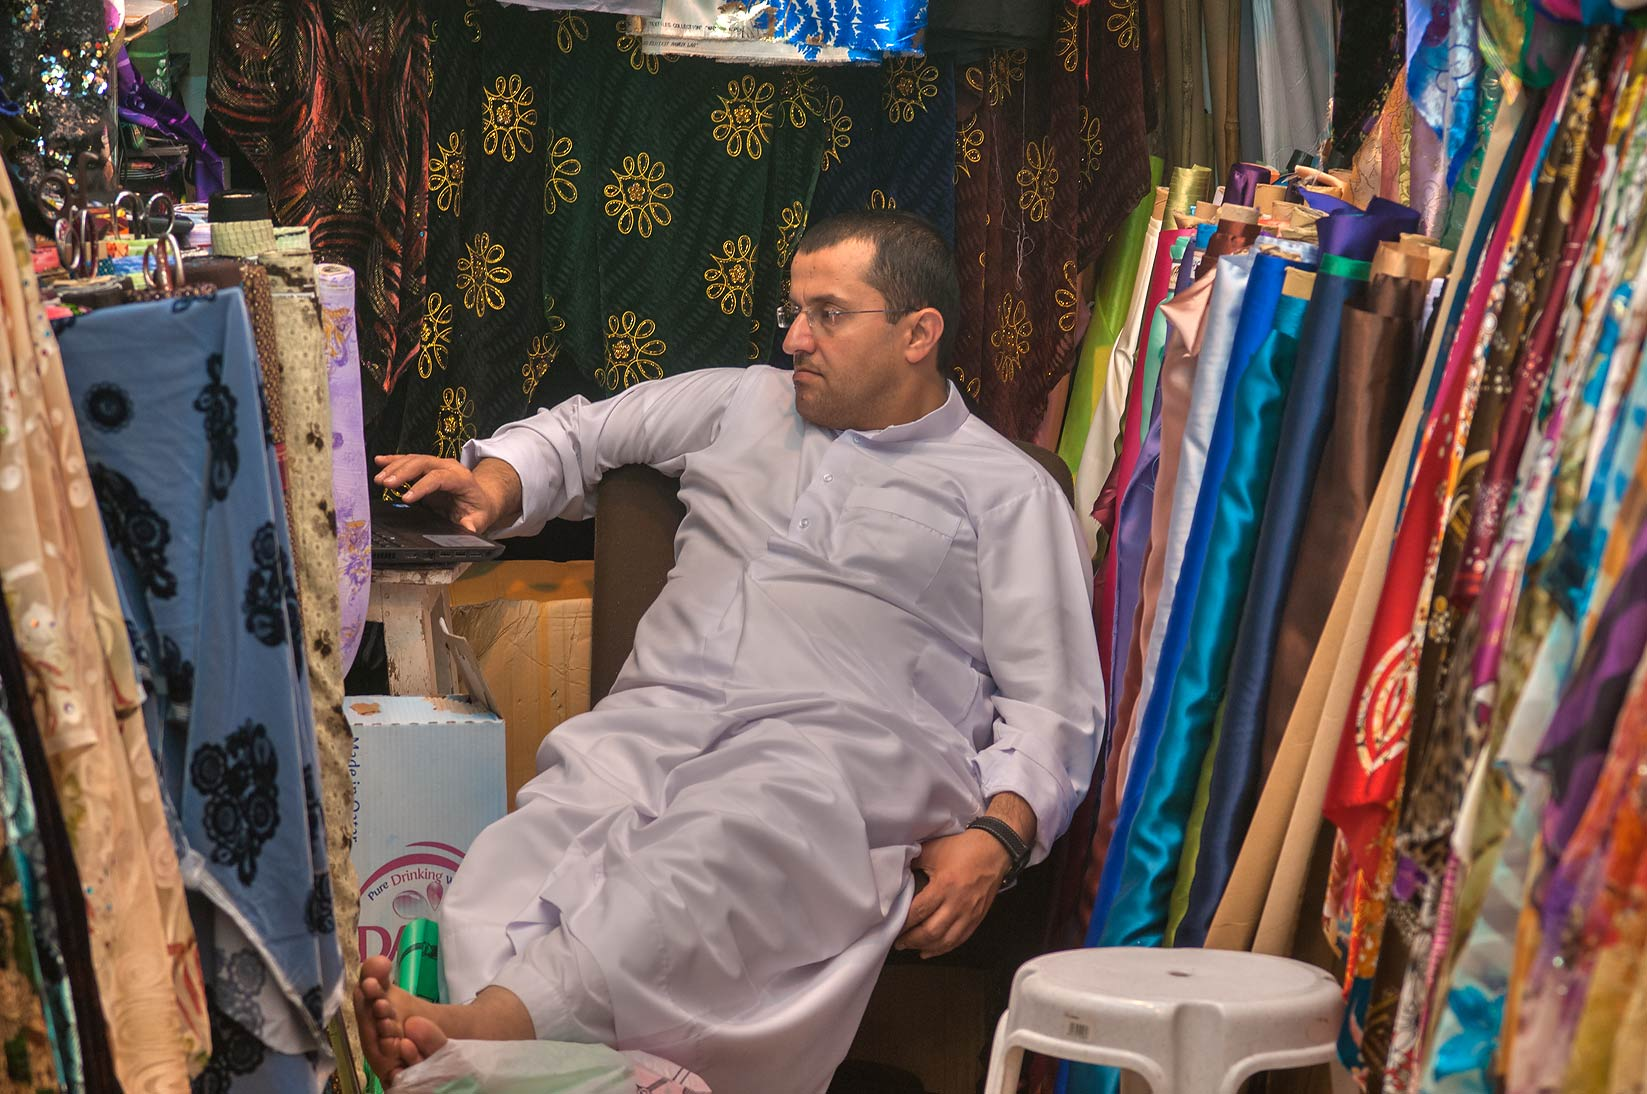 Fabric shop in Souq Waqif (Old Market). Doha, Qatar